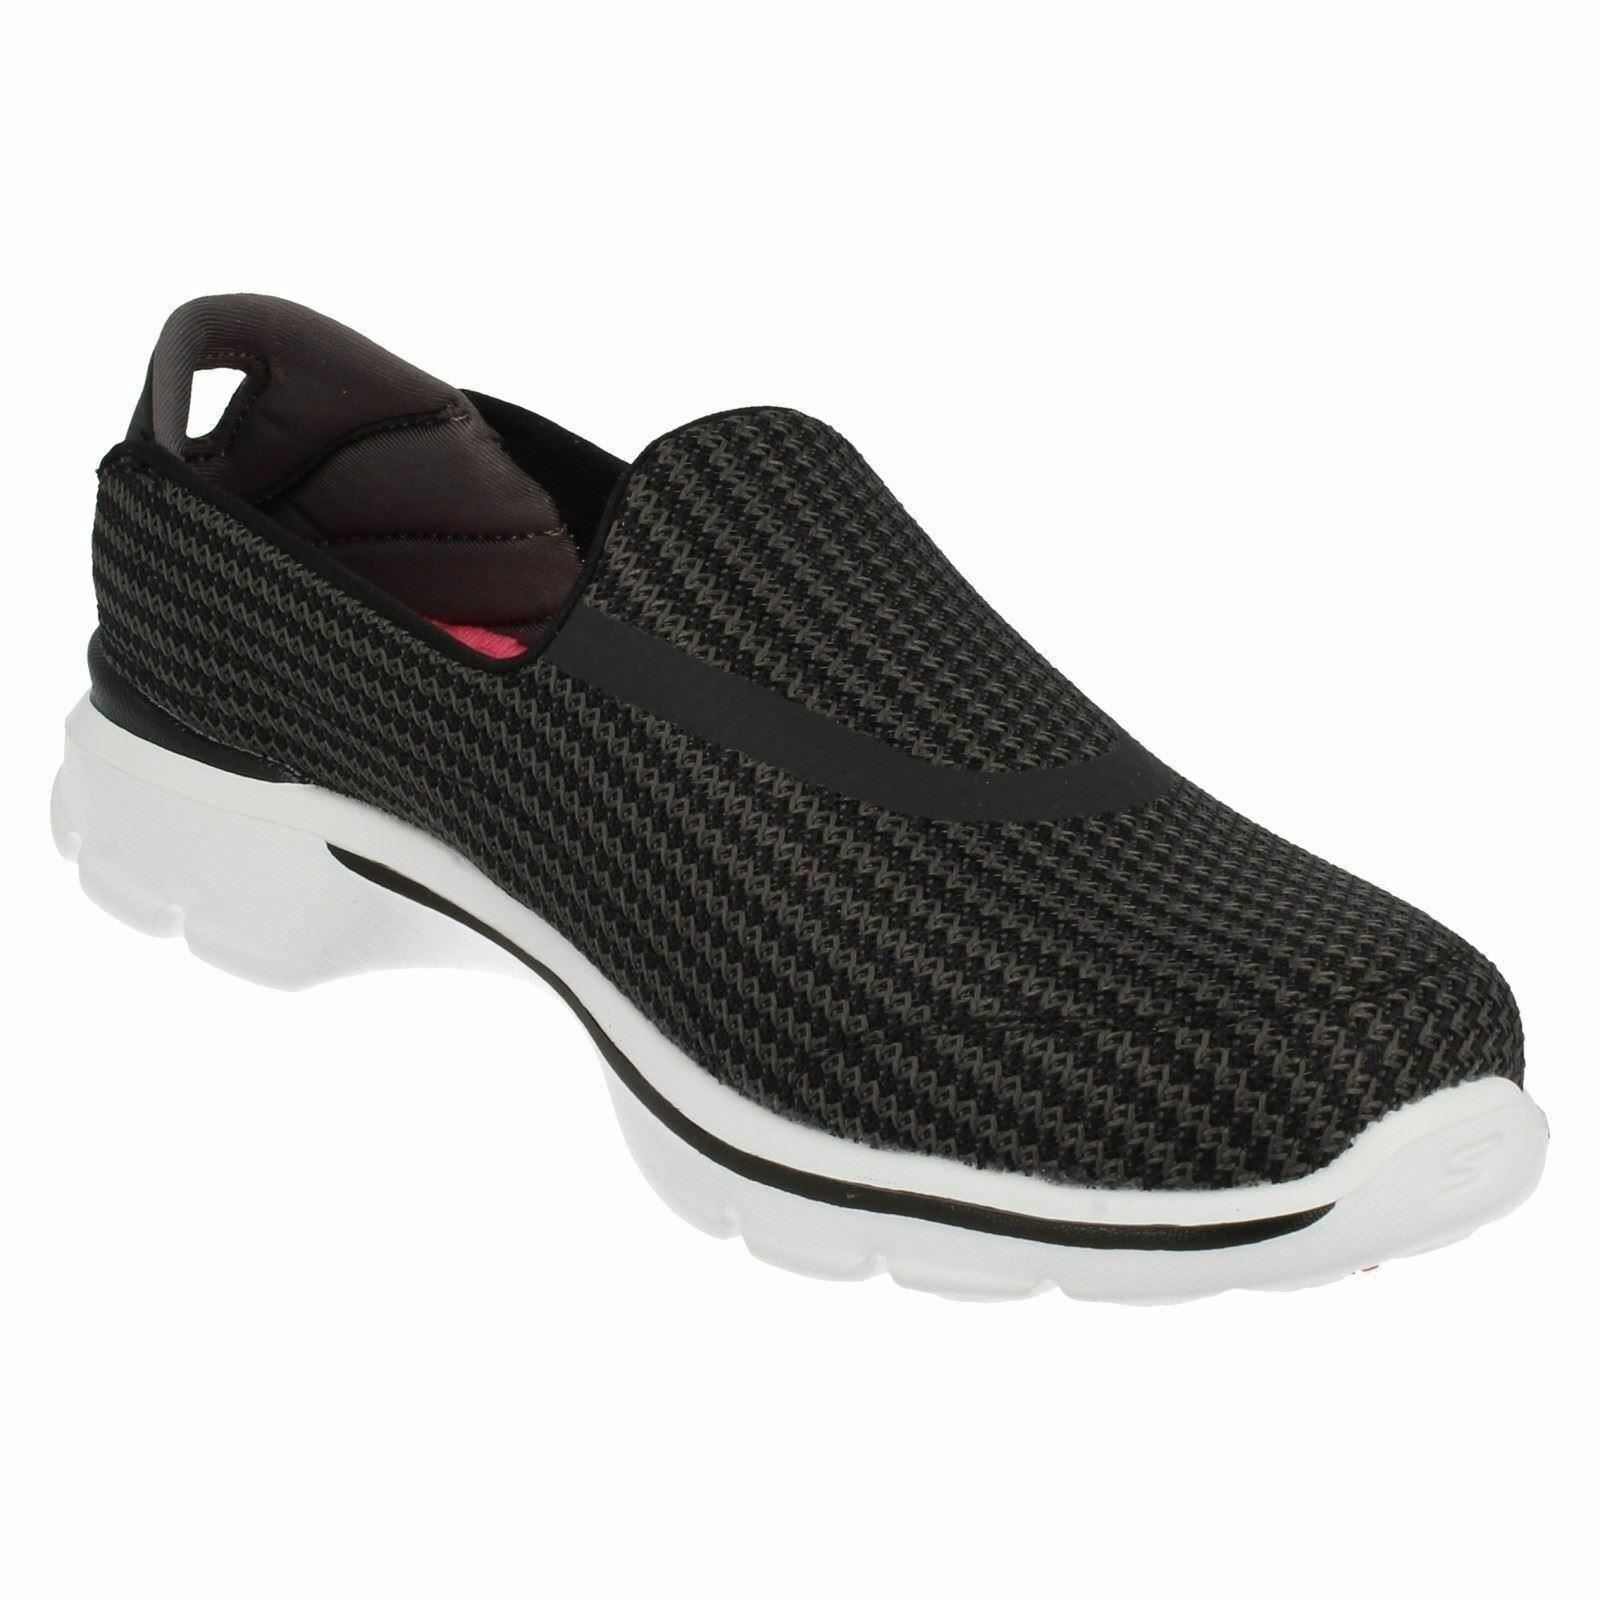 Ladies Black White Navy White I Go Go Technology Technology Technology Go Walk 3 Skechers 13980 a2a6a8